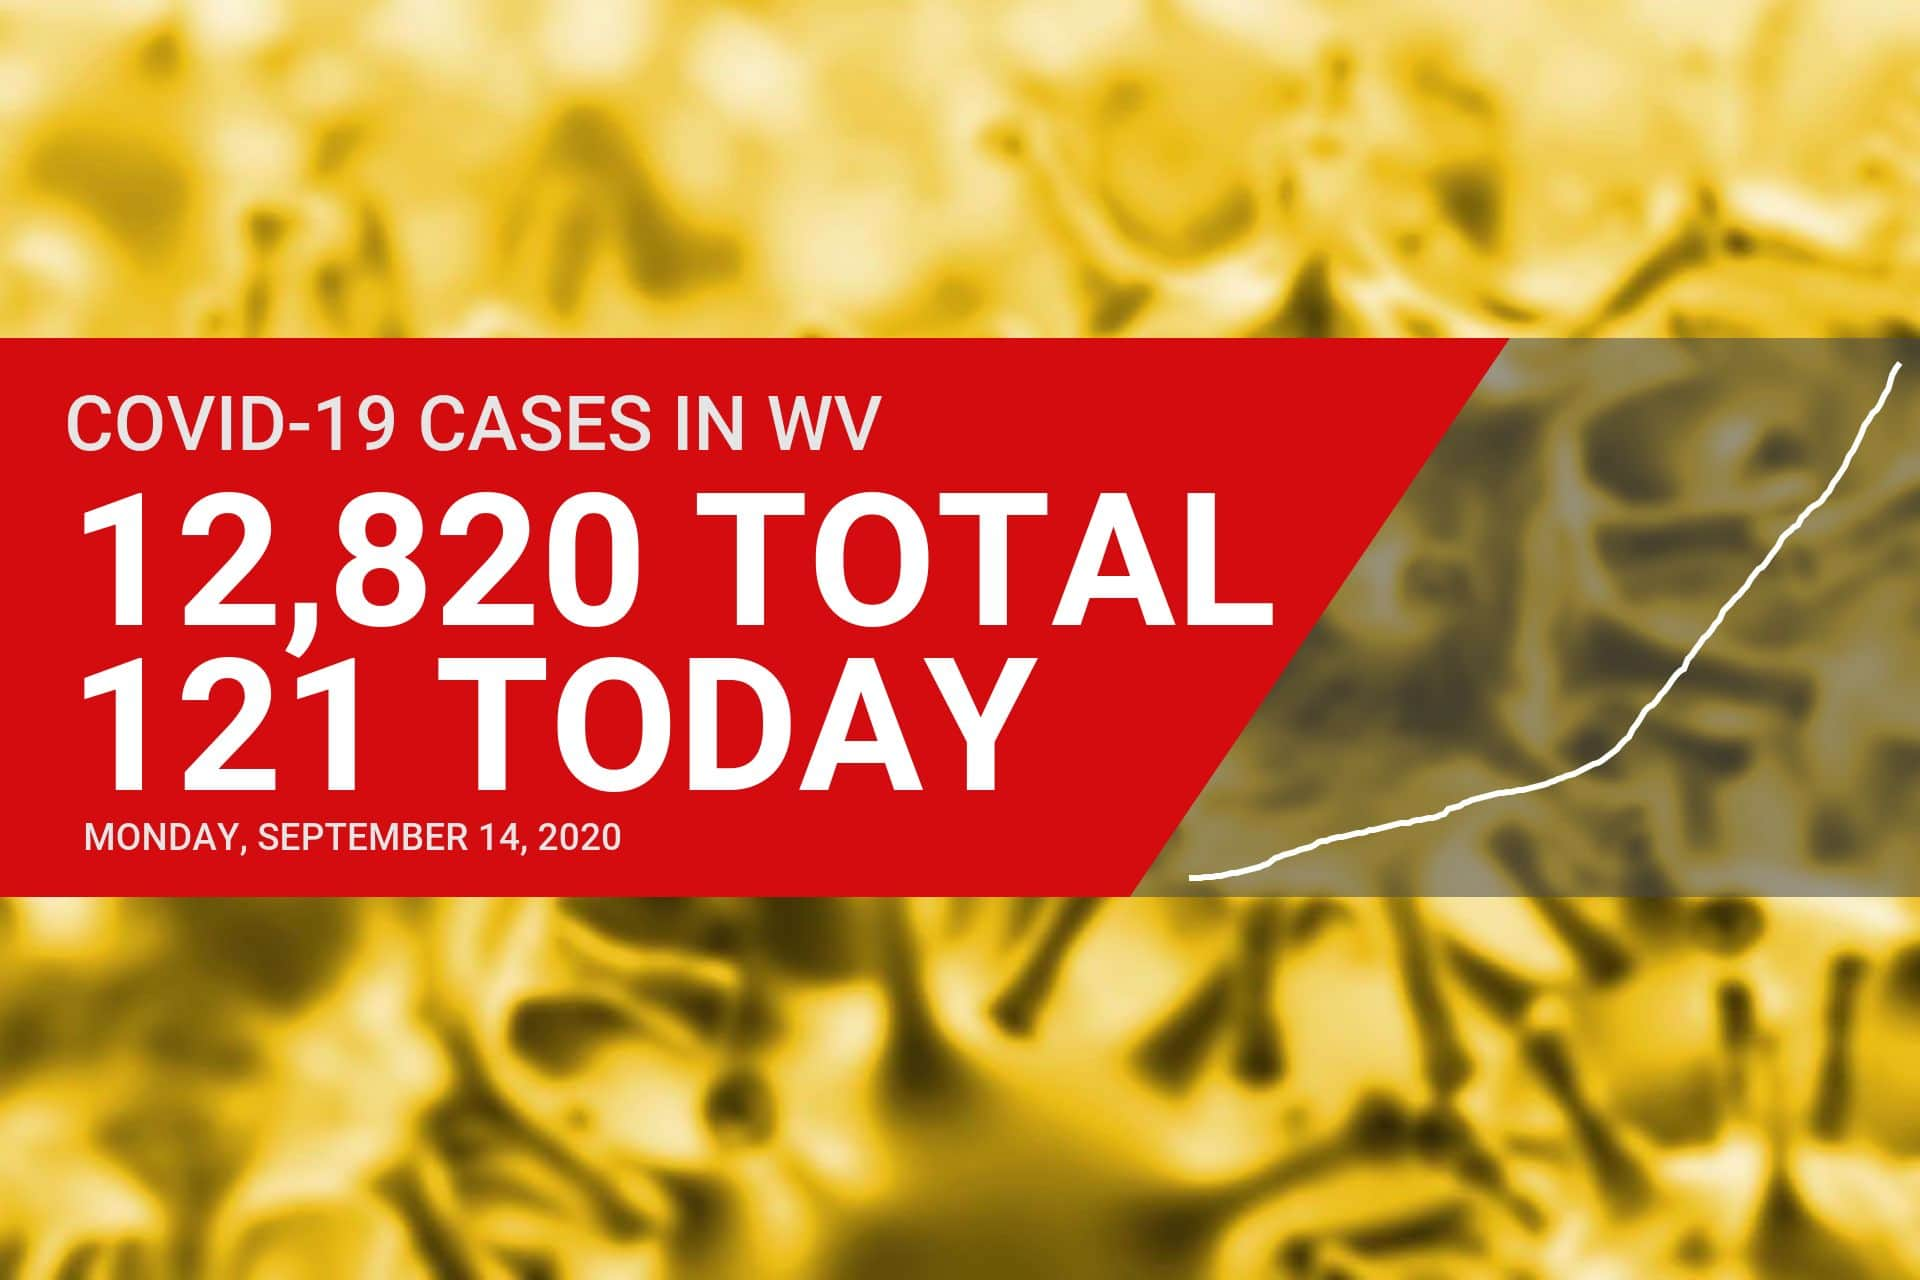 Nine new COVID-19 deaths reported in West Virginia on Monday